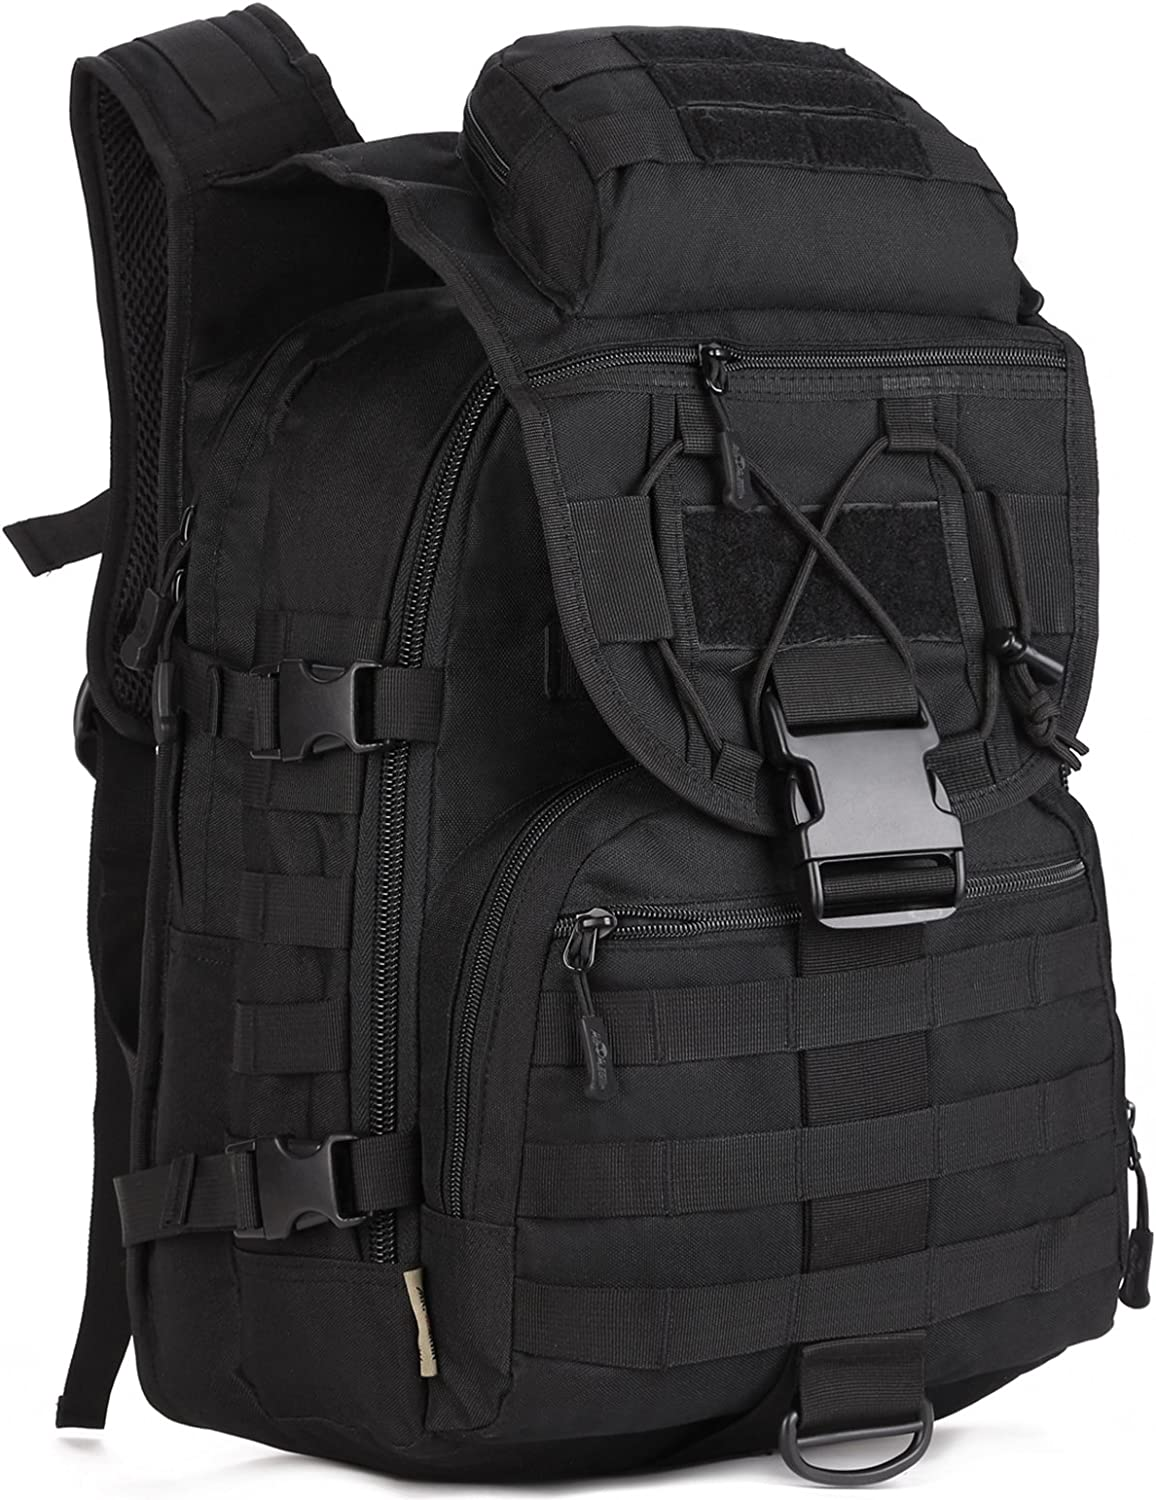 ArcEnCiel Tactical Backpack Military Army 3 Day Assault Pack - Rain Cover Included